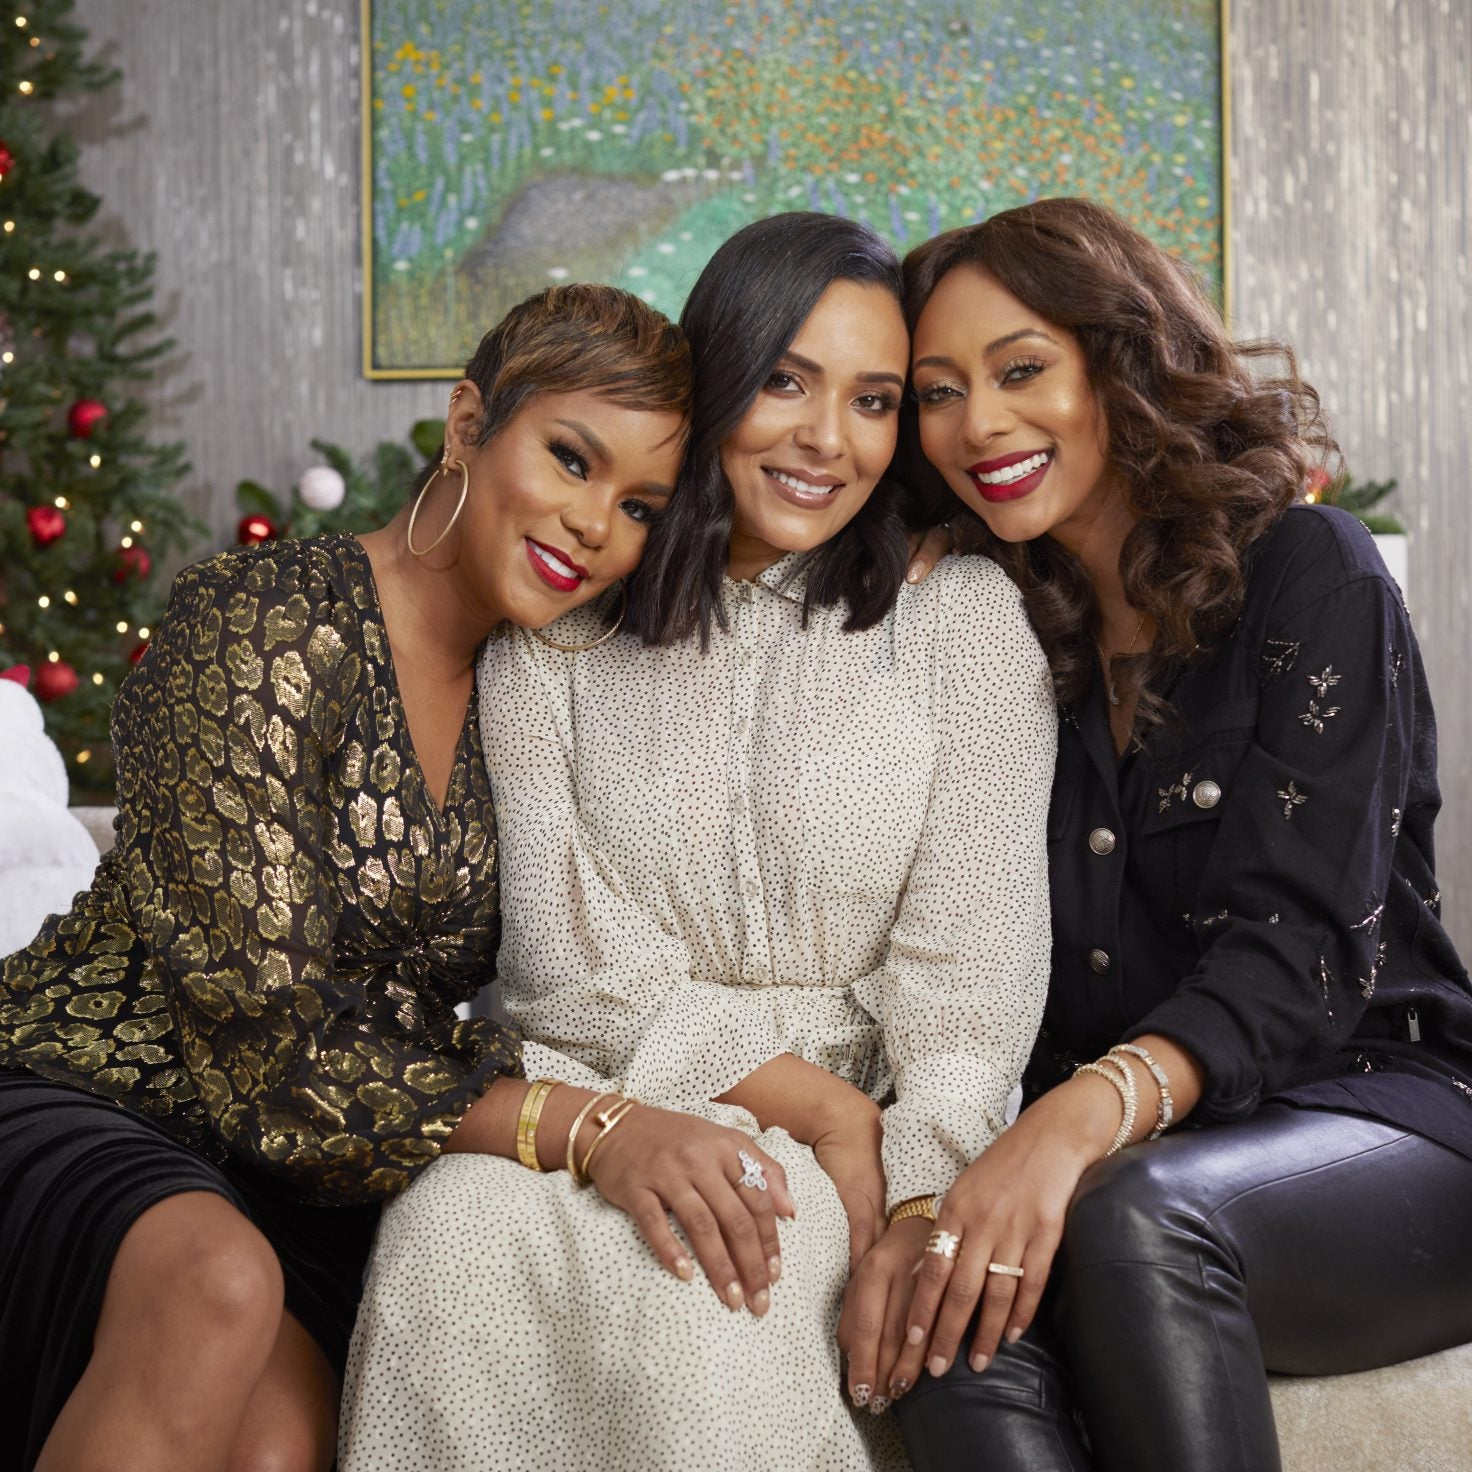 Watch Now: Keri Hilson, LeToya Luckett & Eudoxie Bridges Pen Heartfelt Letters About Their Friendship